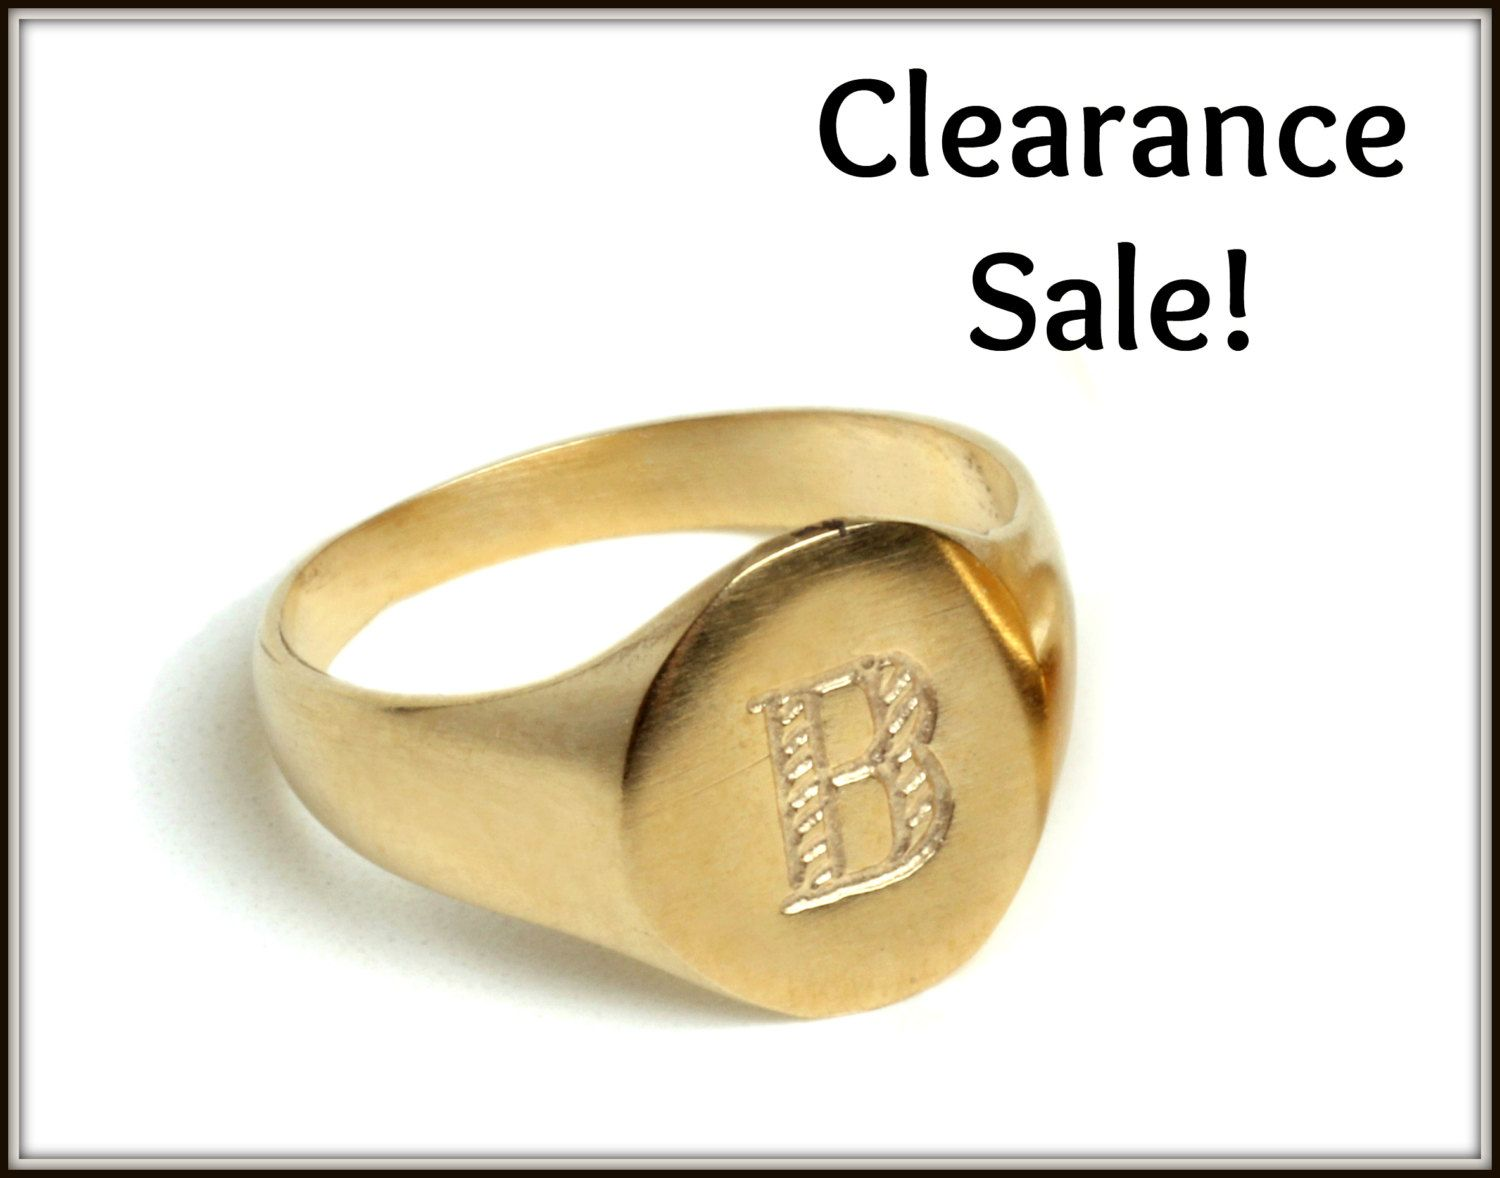 Size US 4 Handmade French Woman Imprint Seal Ring made from 14K Gold Plated Brass Coin Signet Ring Unisex Pinky Ring